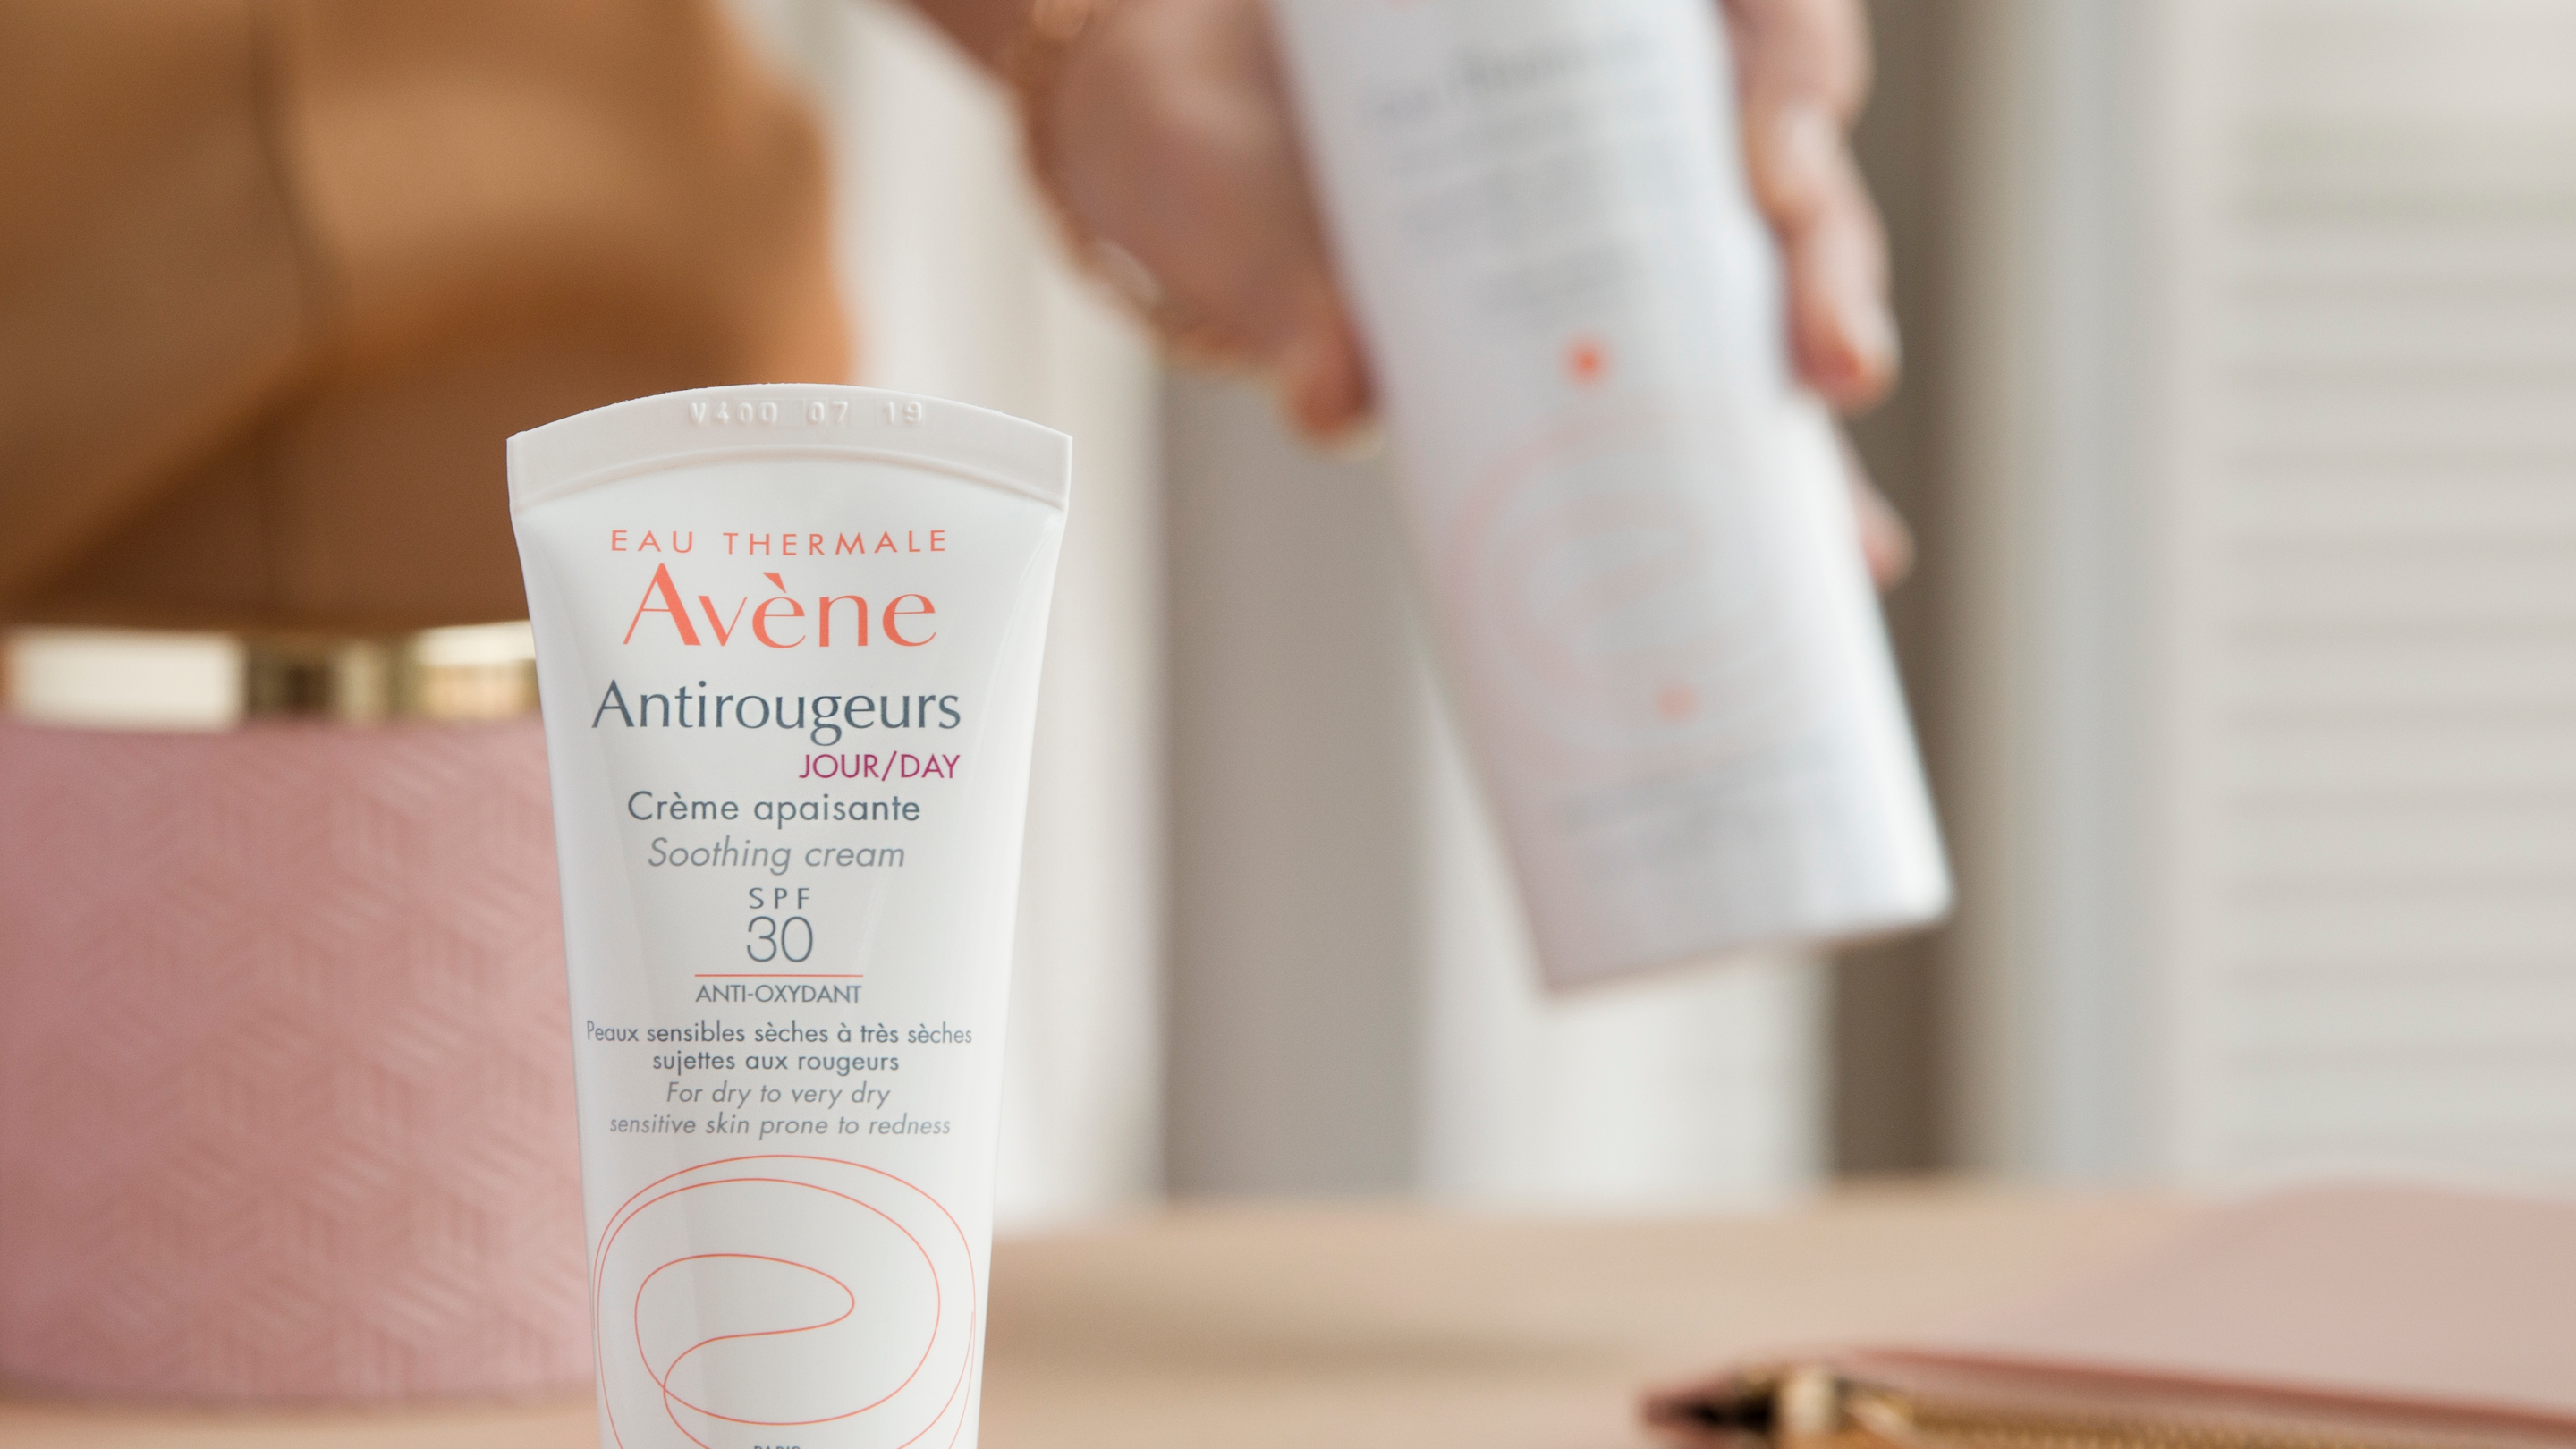 AV_ Antirougeurs_Day Soothing Cream-Spray_social_post_3282770203554_HD